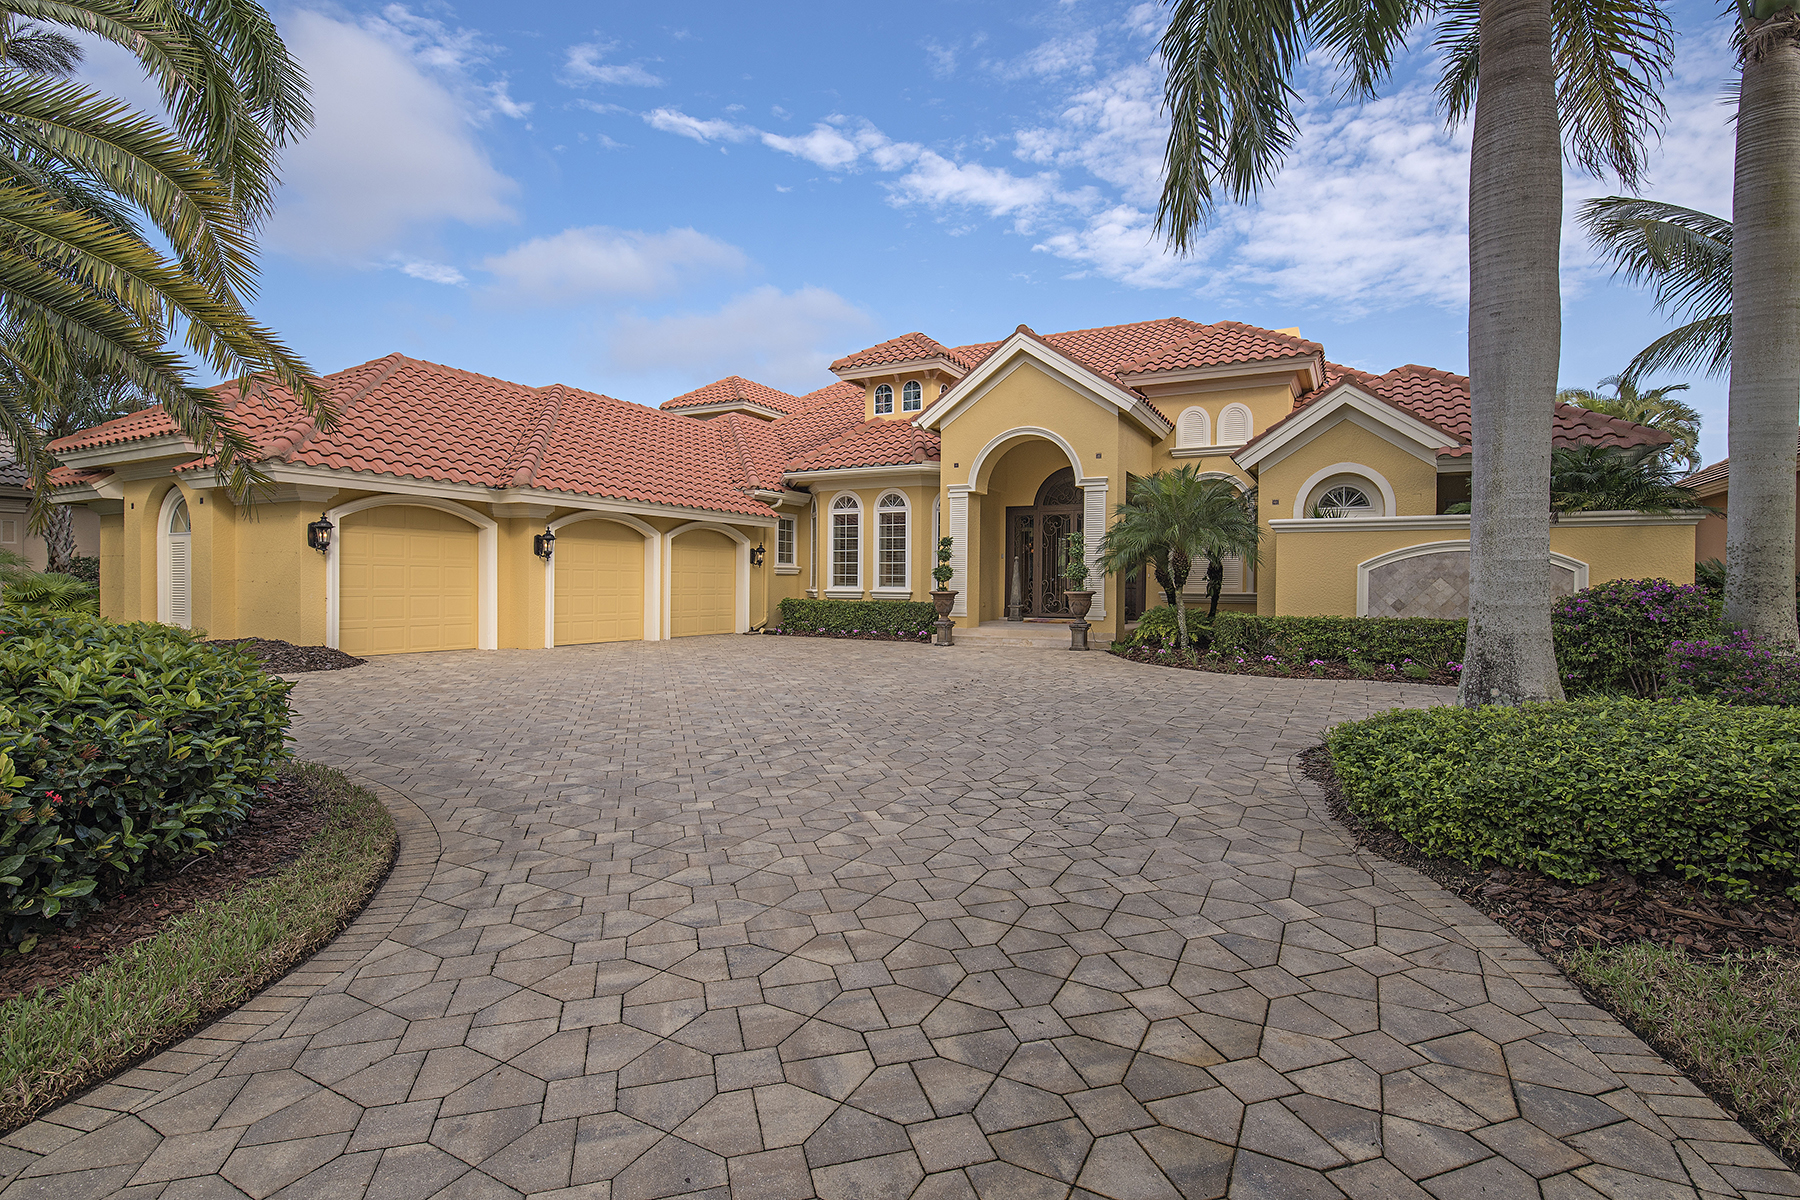 Villa per Vendita alle ore WILLOW WALK 9166 Willow Walk Estero, Florida, 34135 Stati Uniti